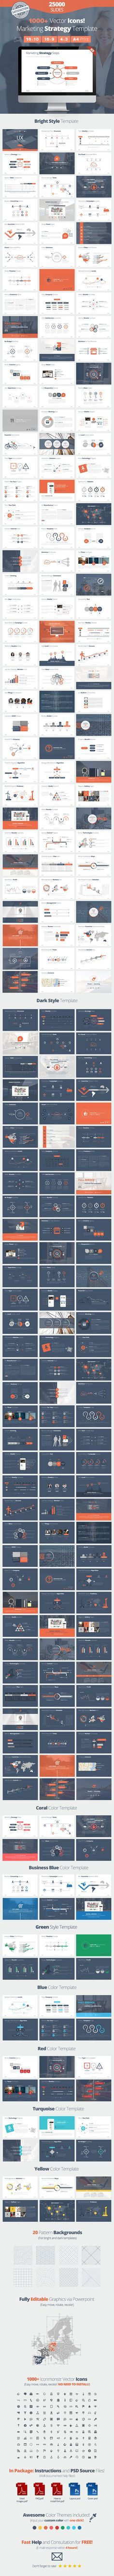 Marketing Strategy Presentation for Keynote Template #design #slides Download: http://graphicriver.net/item/marketing-strategy-presentation-for-keynote/12739940?ref=ksioks